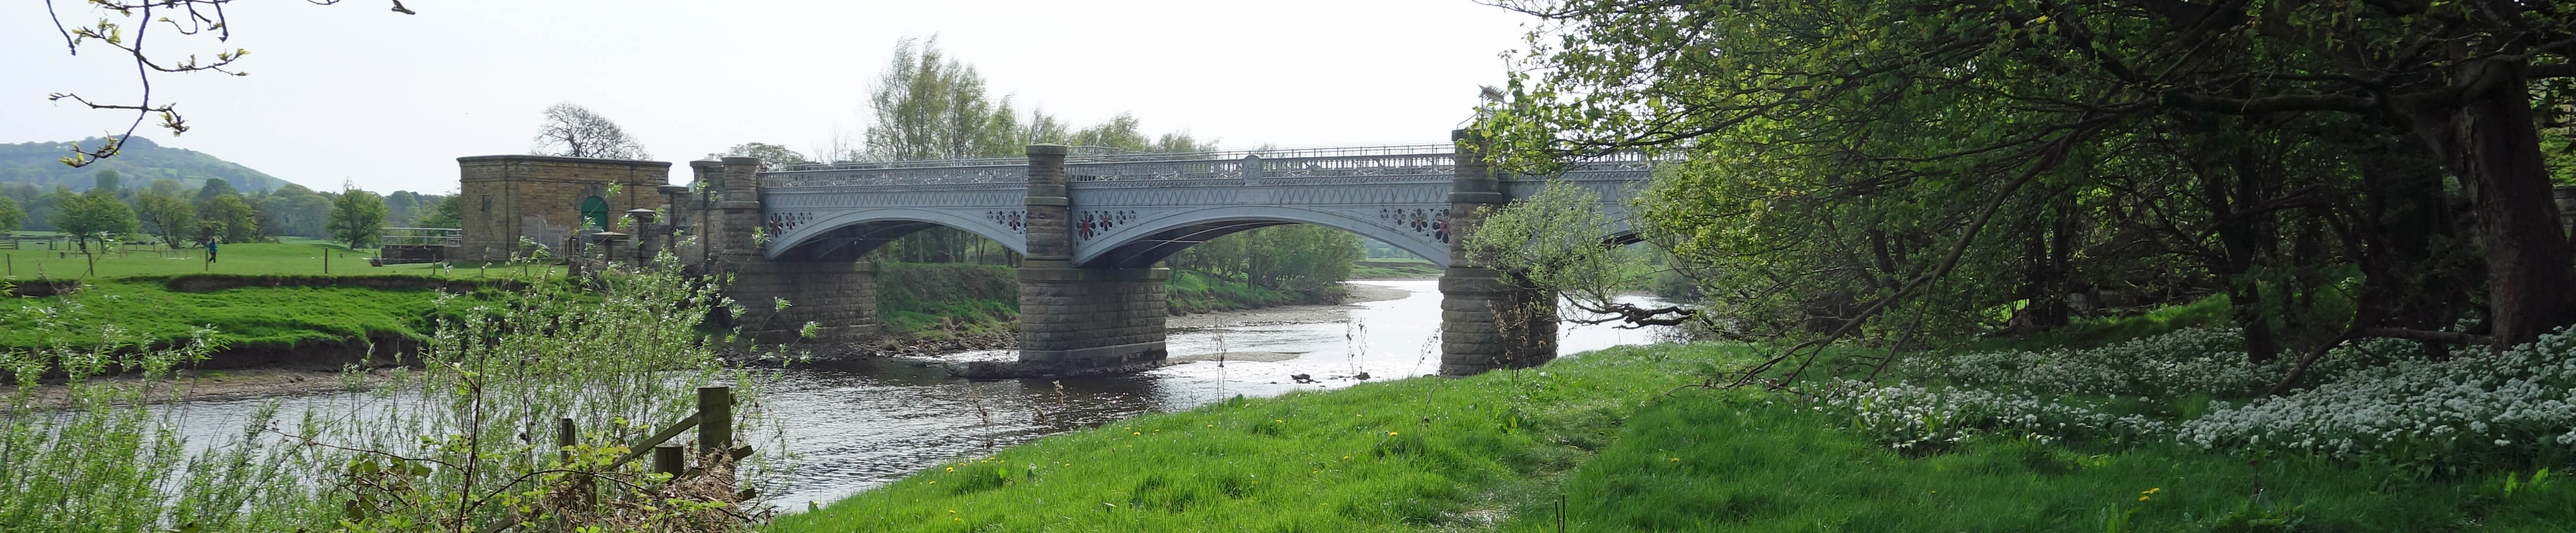 Waterworks Bridge